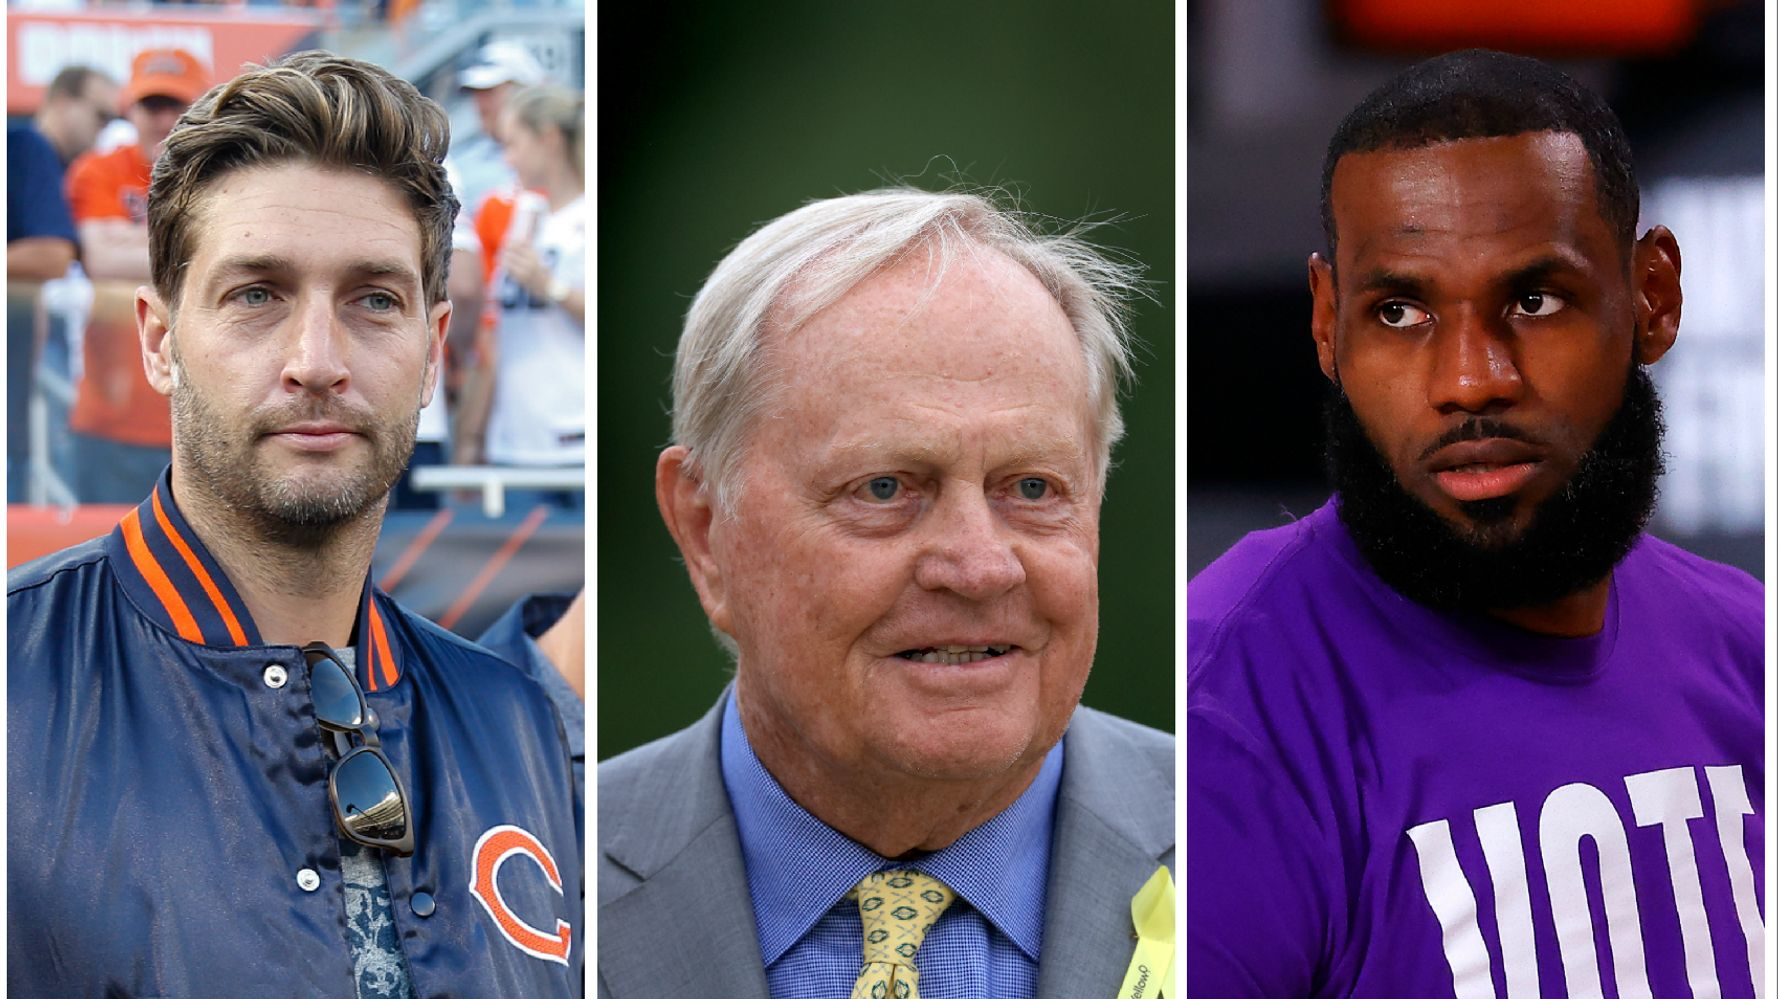 Sports Fans Ask Why Jack Nicklaus, Jay Cutler Don't Have To 'Shut Up And Play'